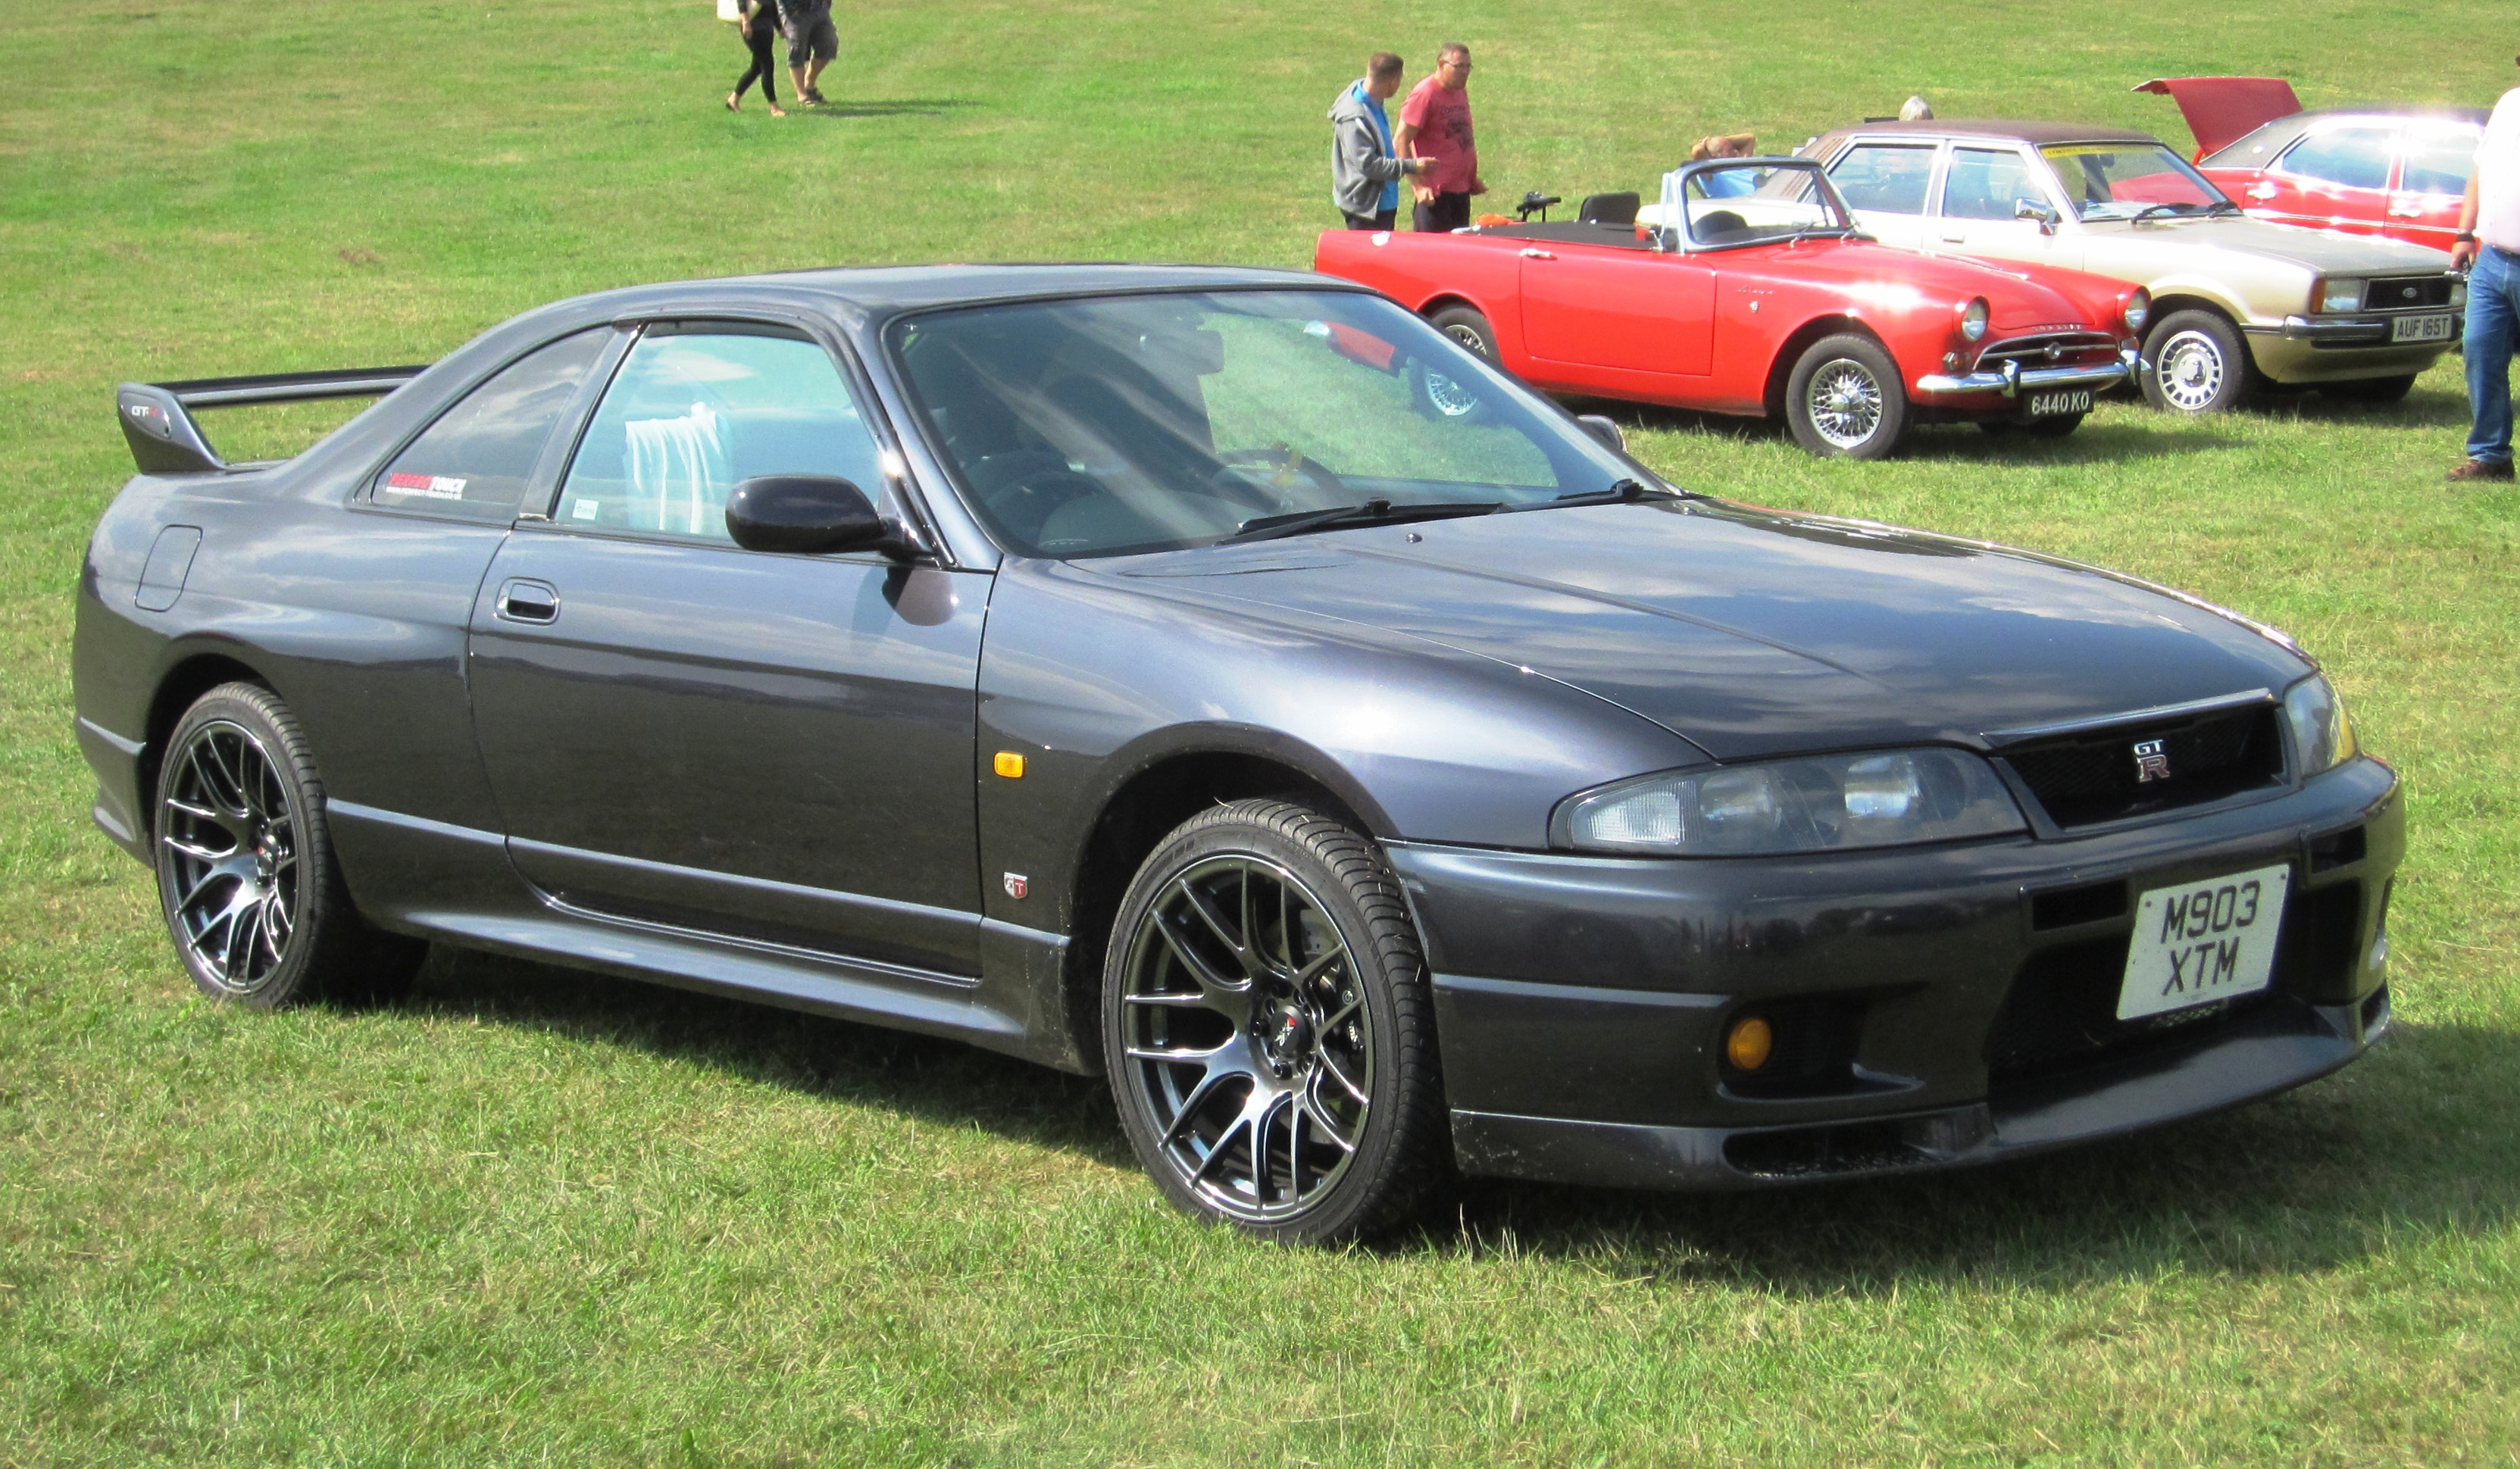 File:Nissan Skyline R33 GT R Manufactured 1995 First Registered In UK April  2006